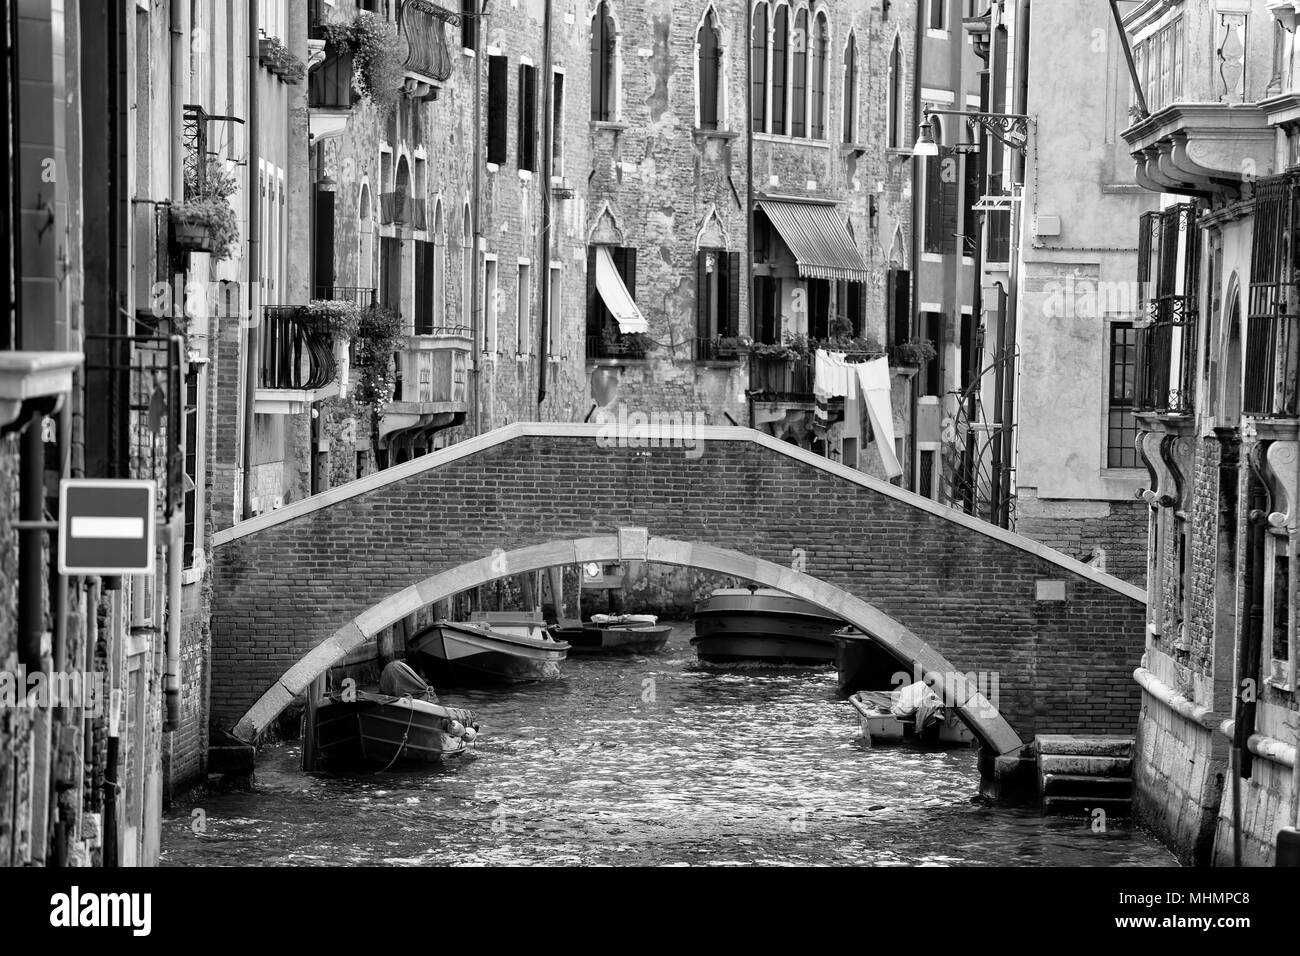 venice canals view in black and white - Stock Image